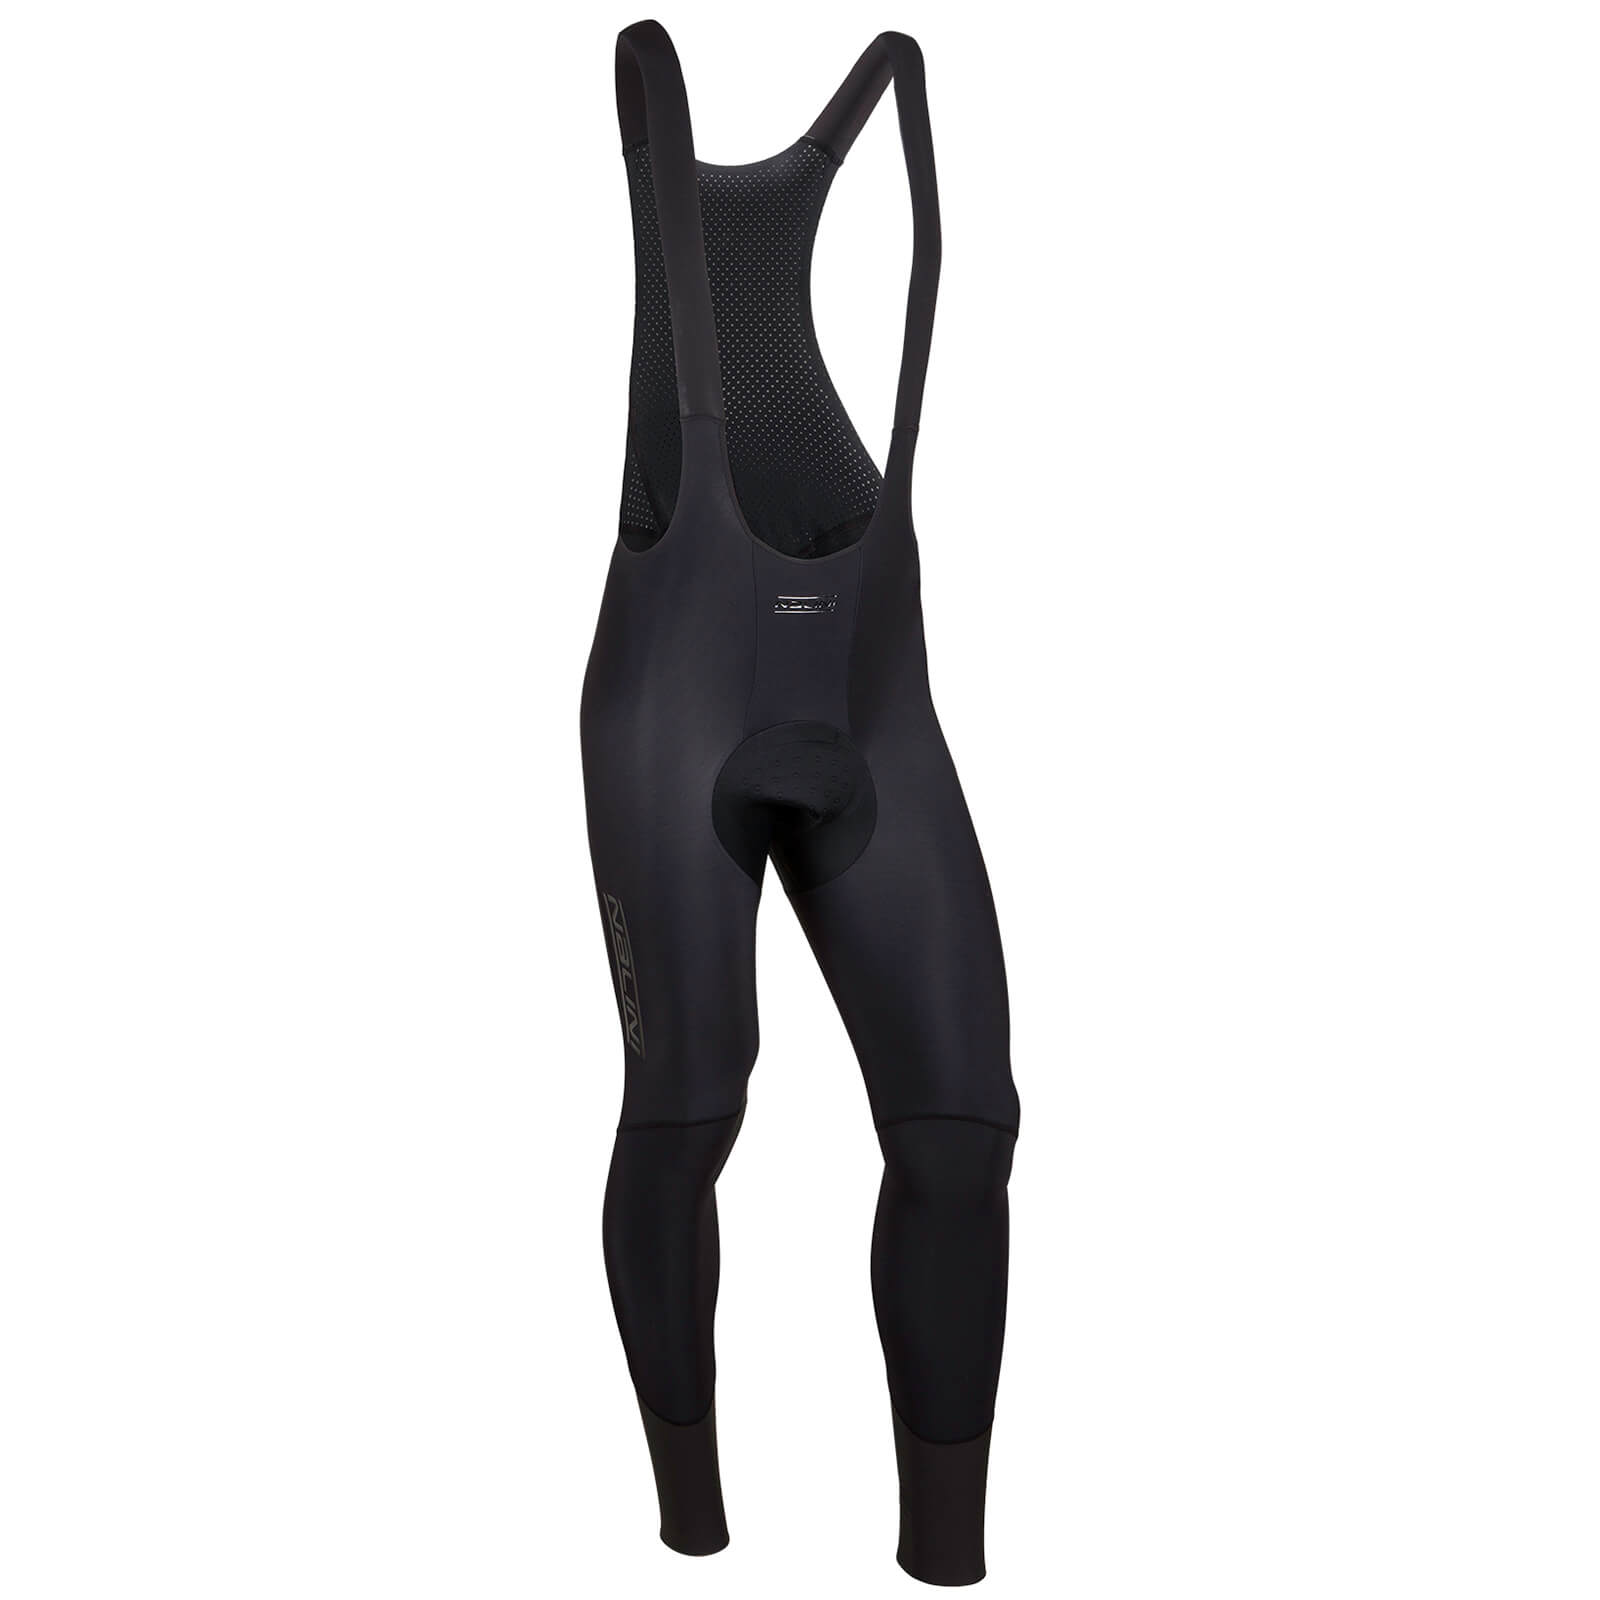 Nalini 1nt3gra Thermo Bib Tights - Black